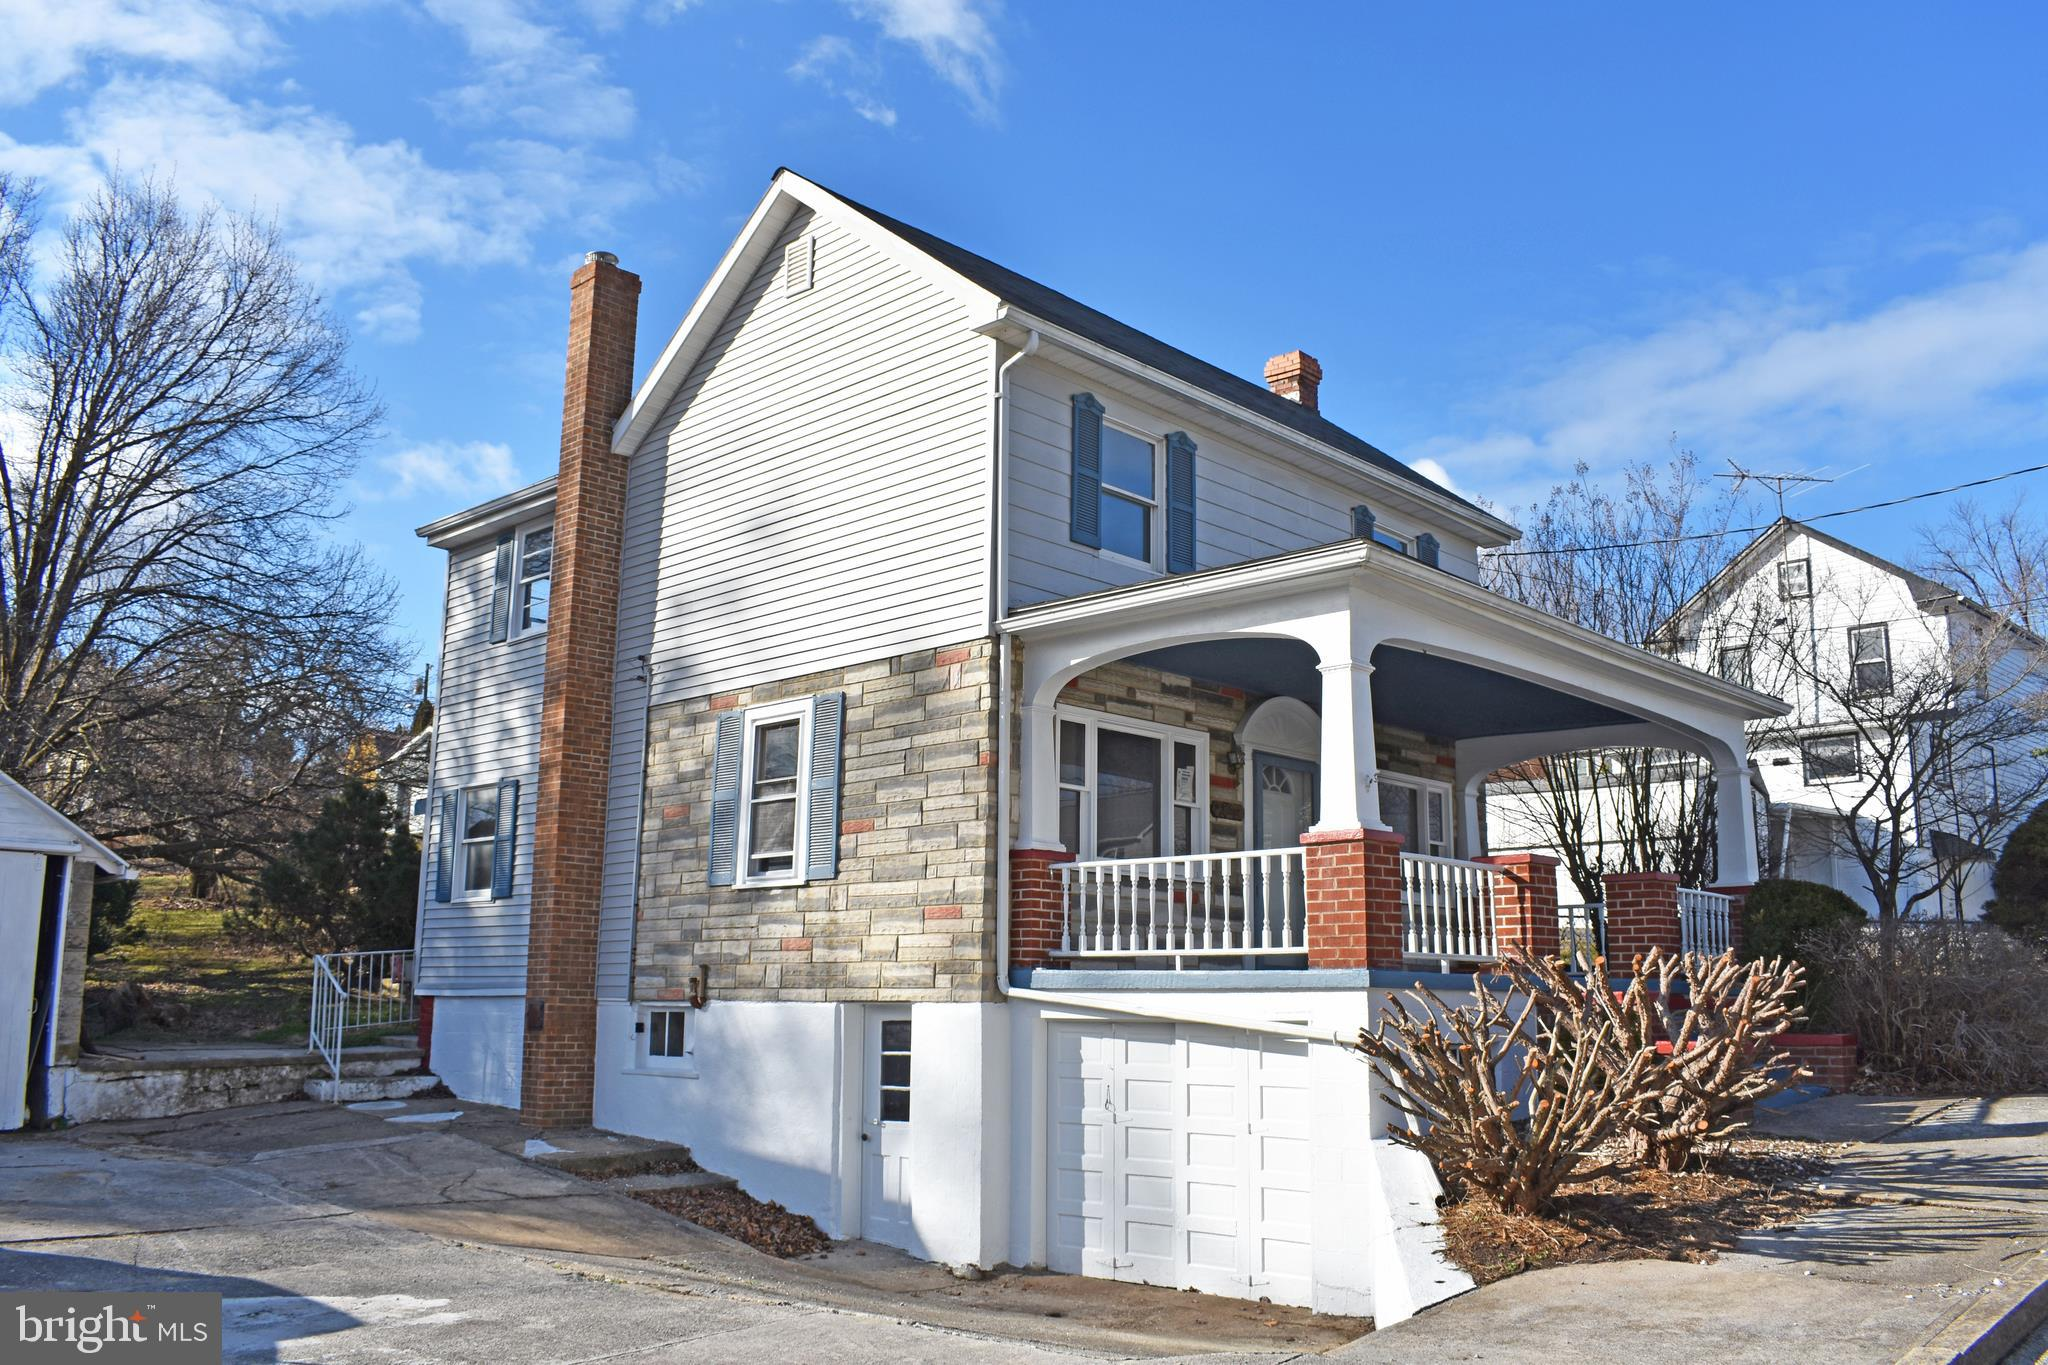 Remodeled 3 bedroom colonial style home located on a double lot within walking distance to the libra